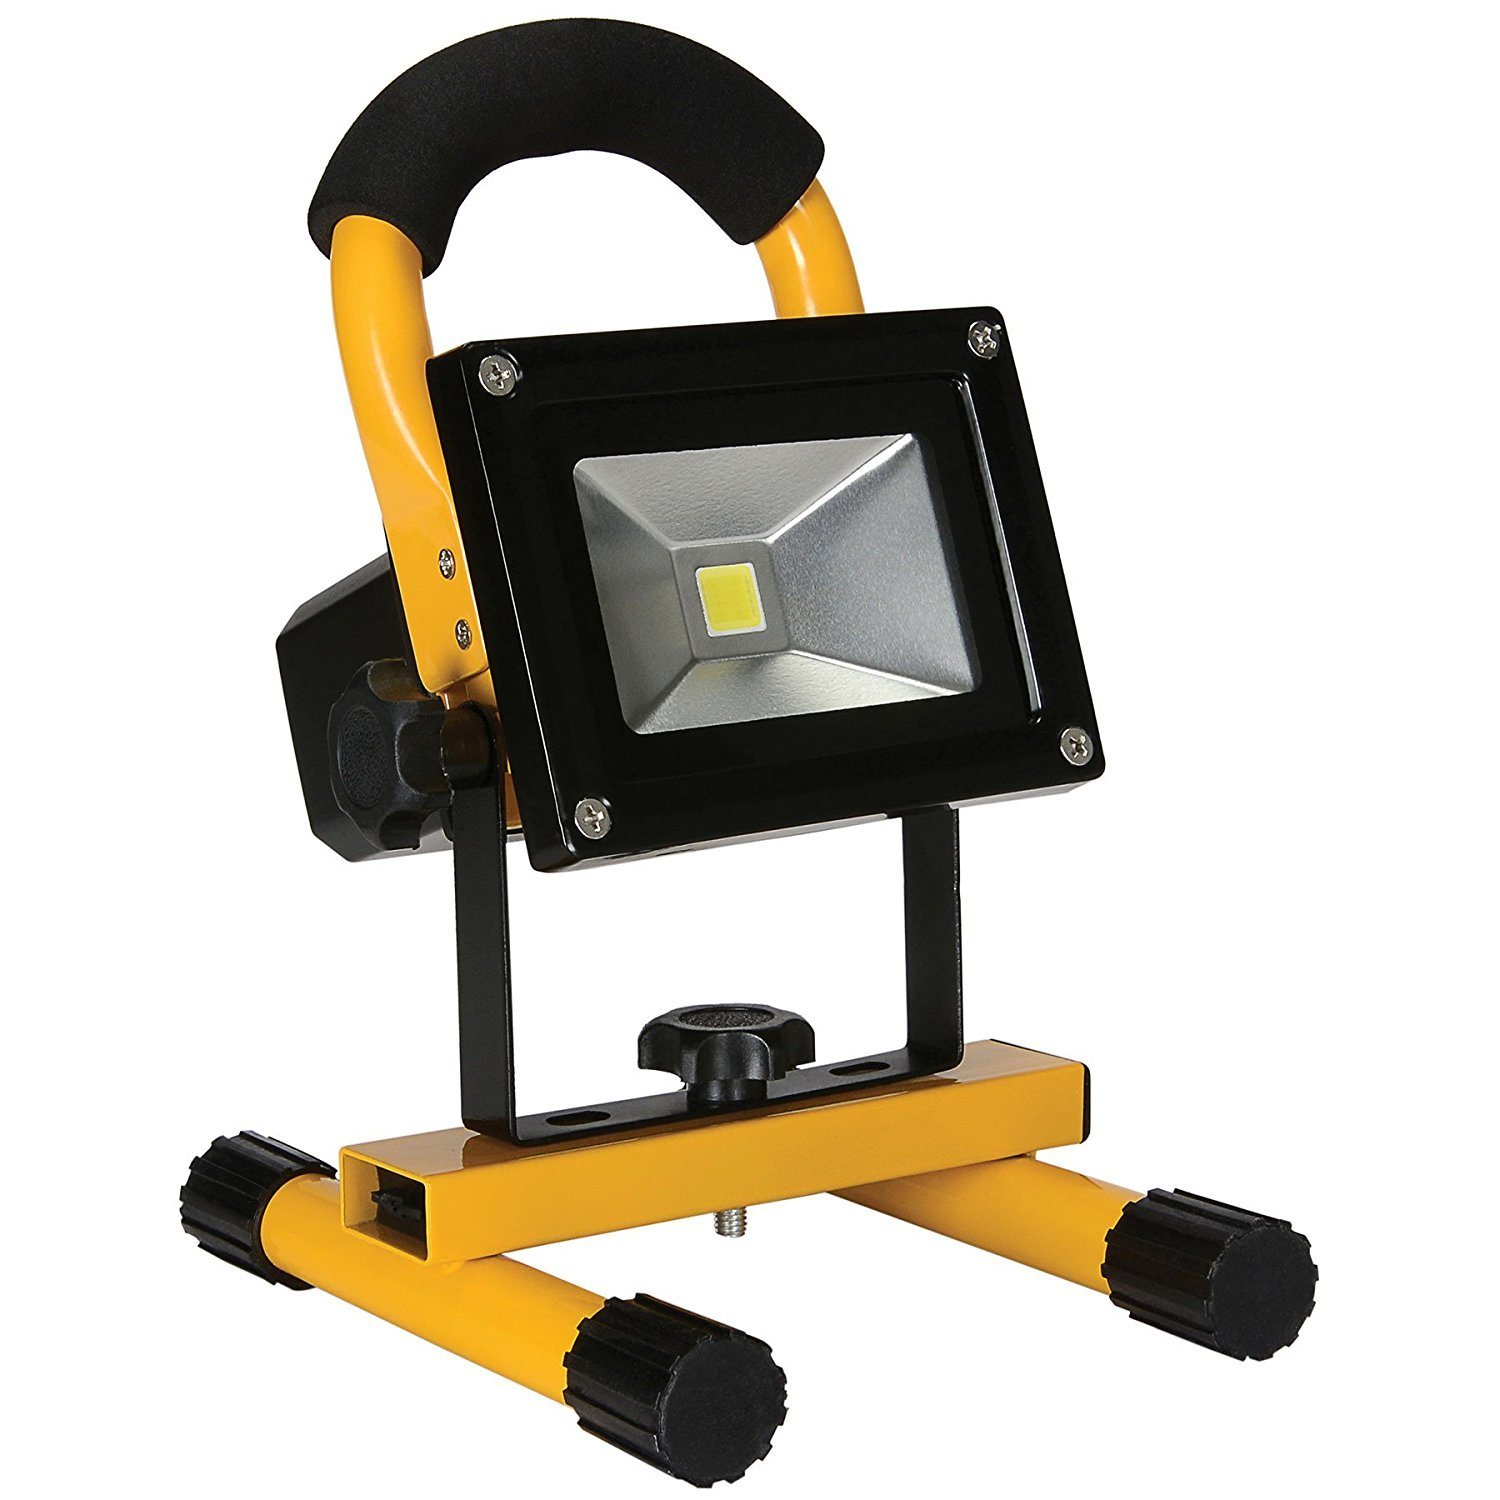 Portable IP65 Waterproof 10W Super Bright COB Type LED Work Light Rechargeable Flood Lights Lamp by Electronix Express